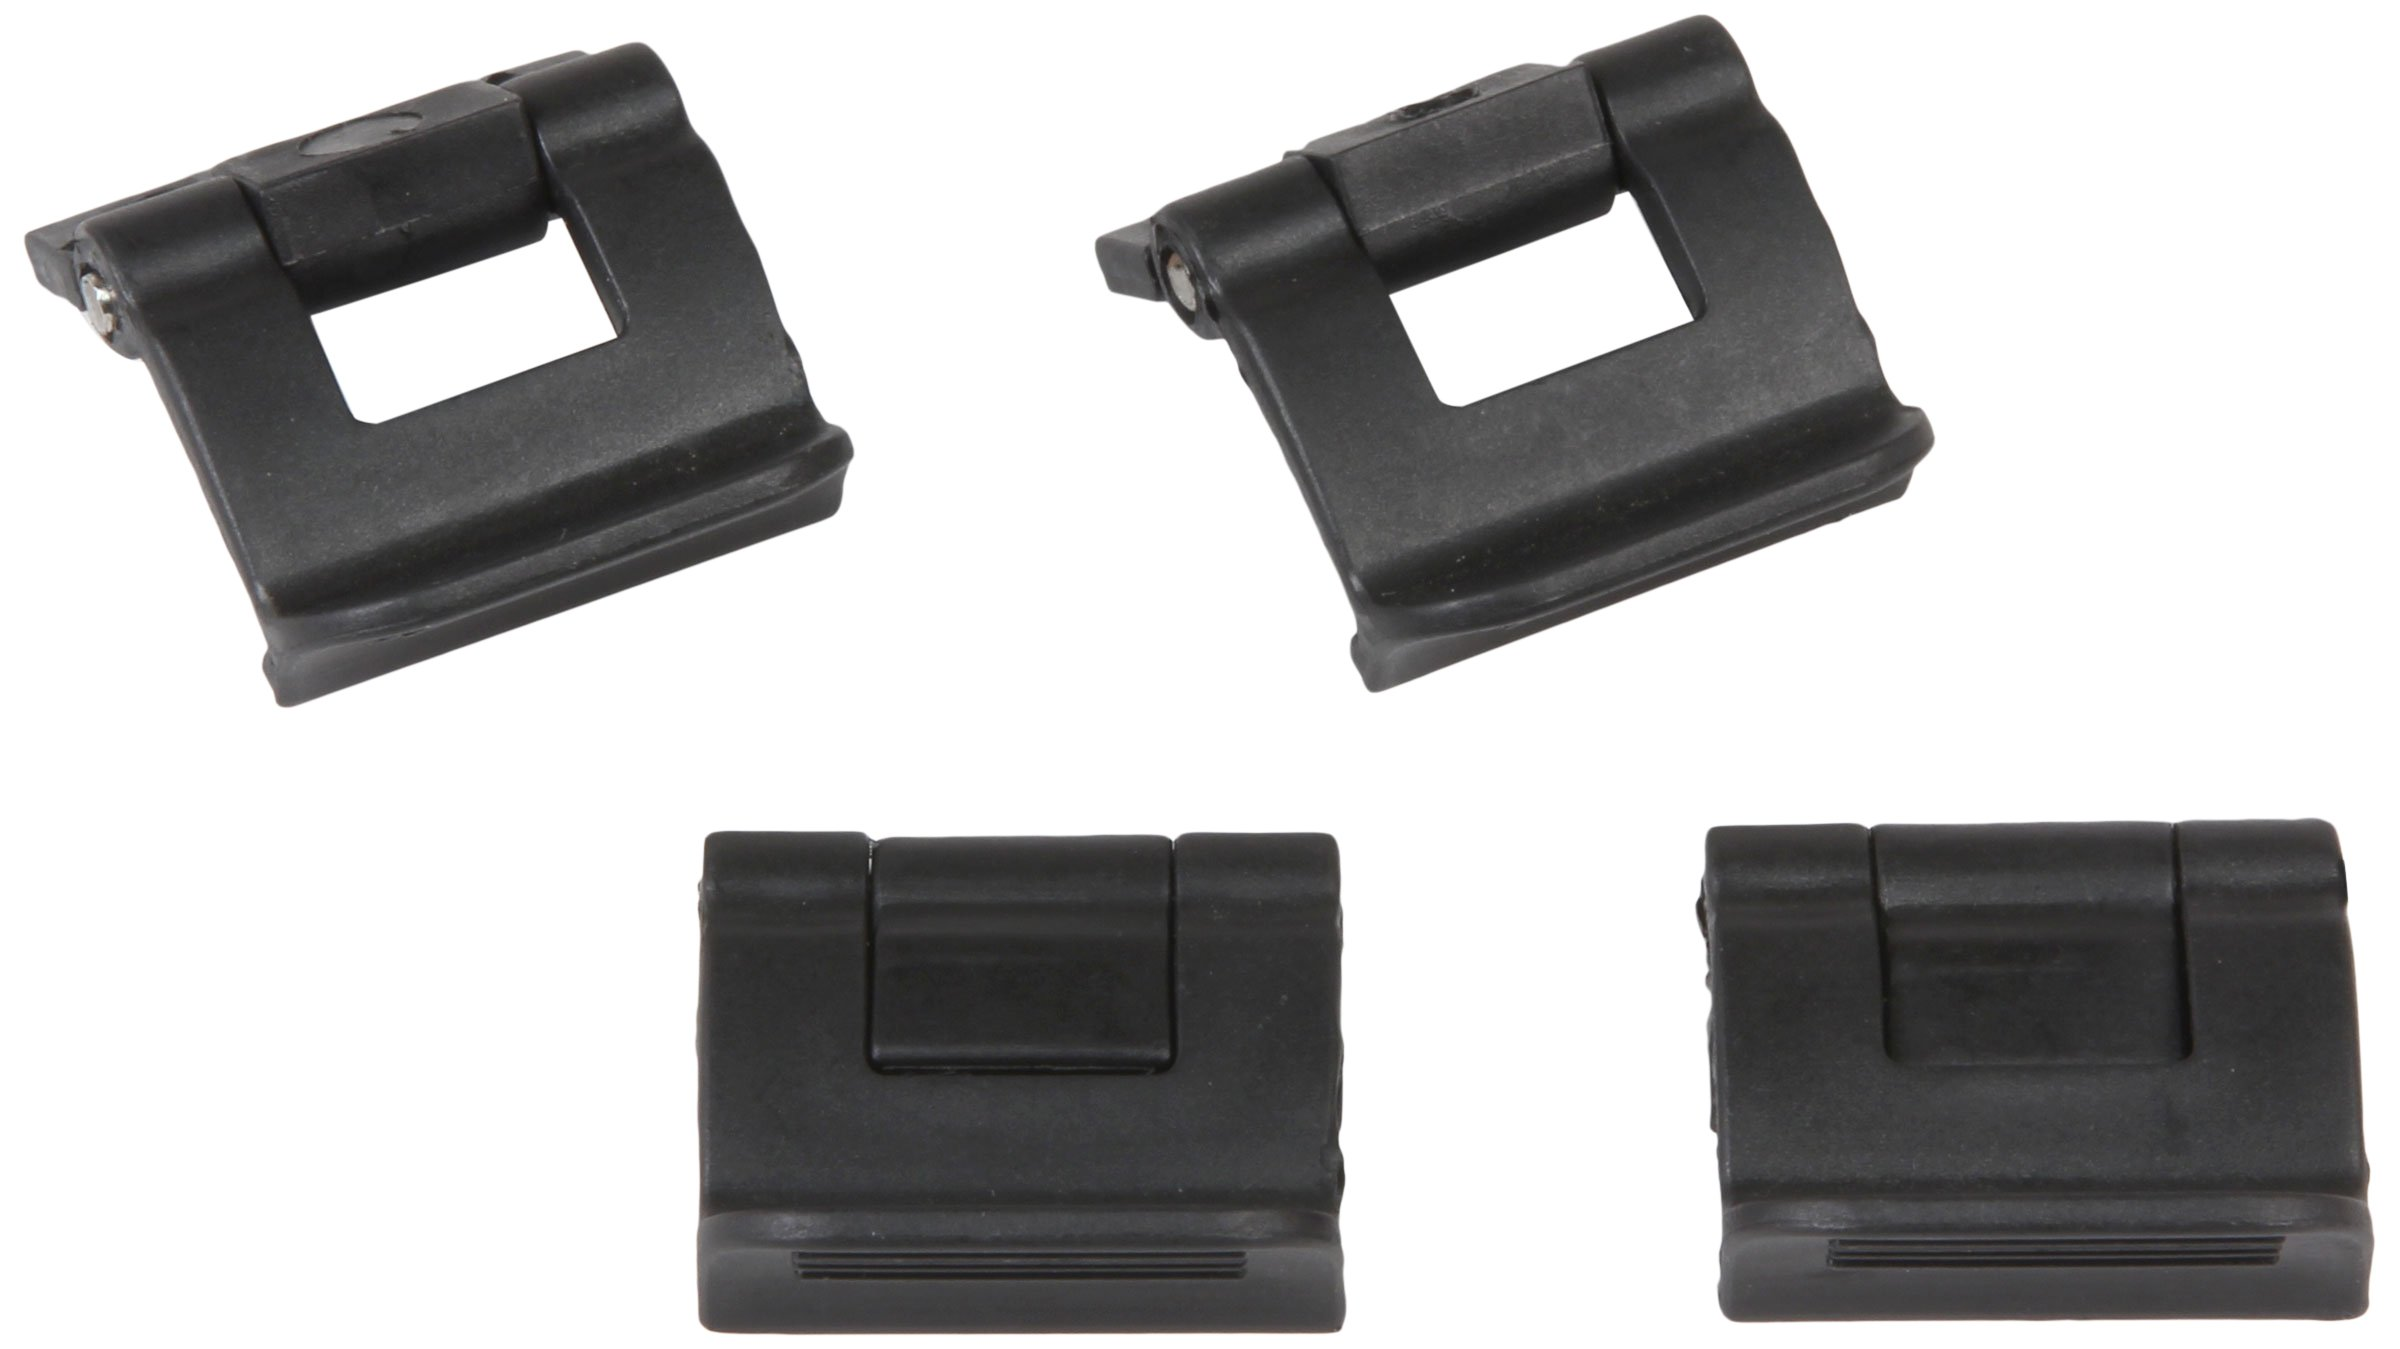 Cigar Caddy Replacement Clip for Travel Humidors, 4-Pack